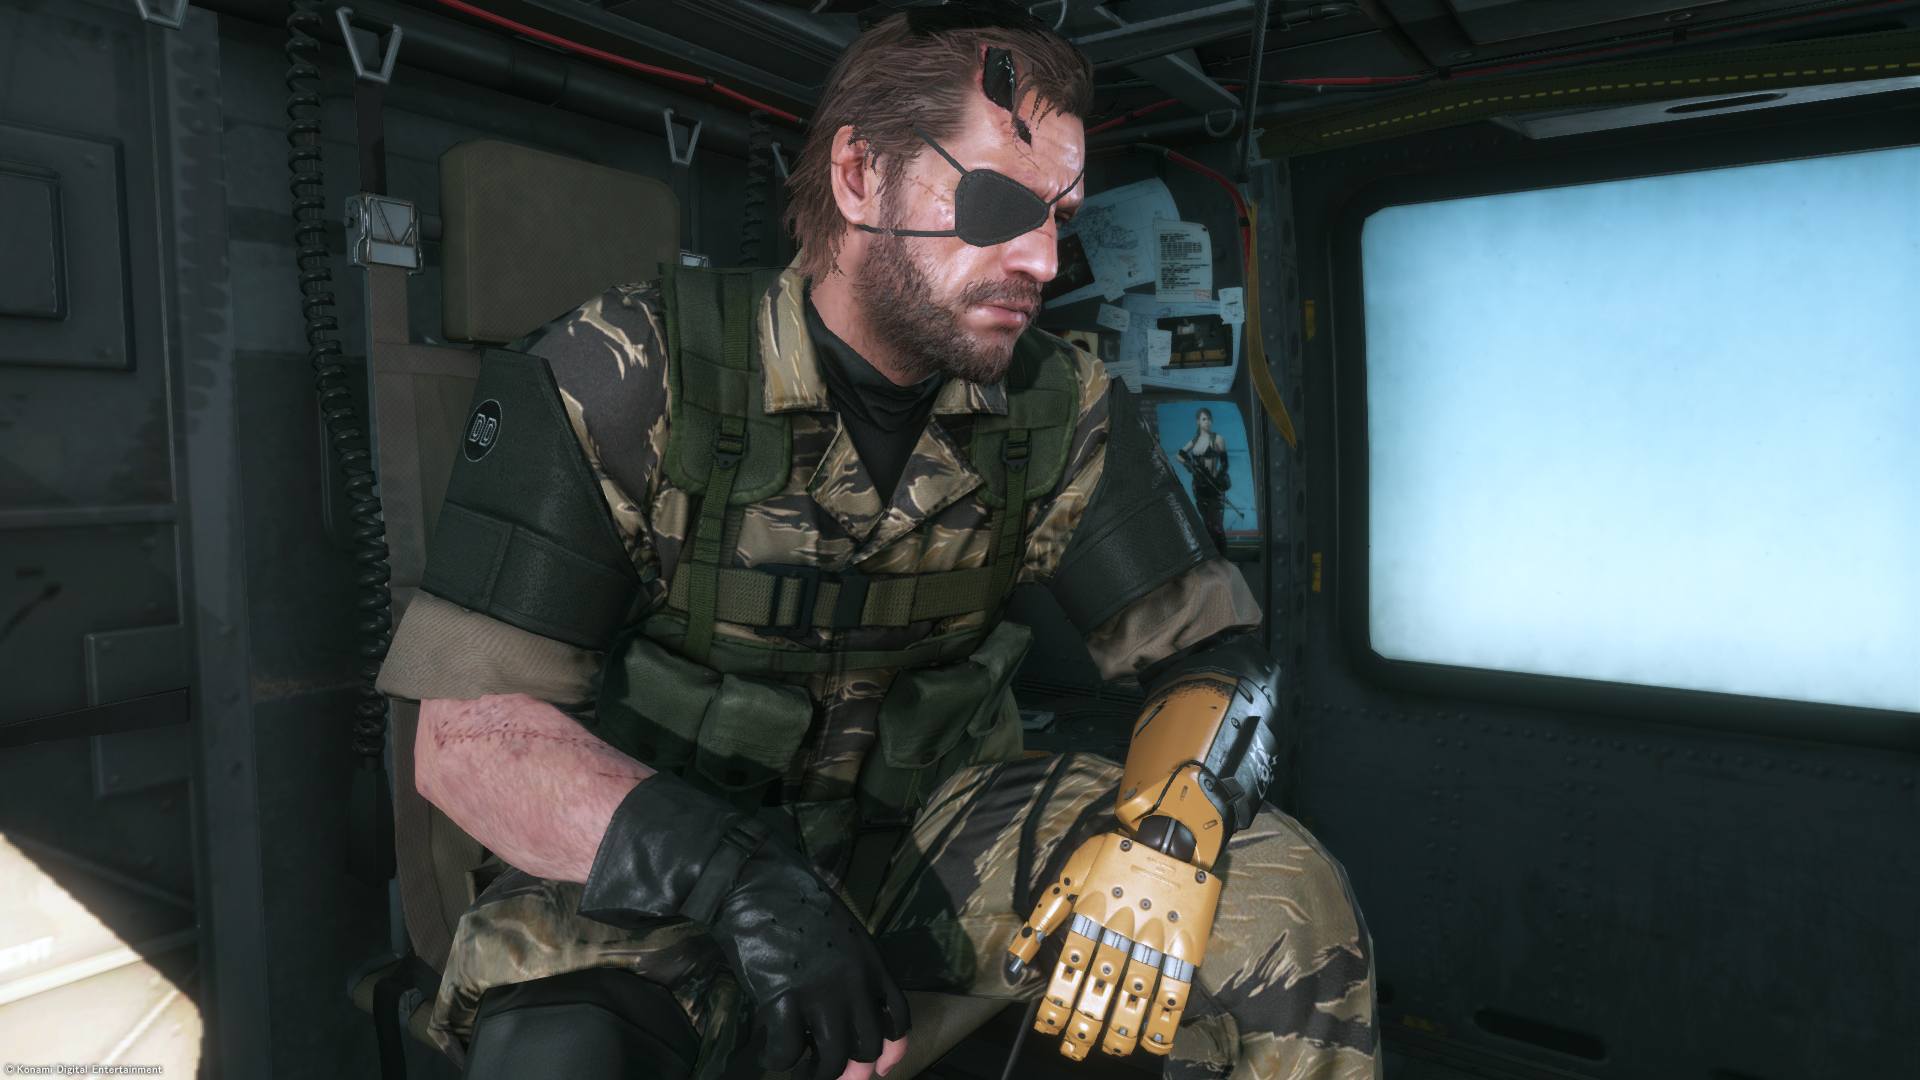 metal gear solid v the phantom pain receives new comparison